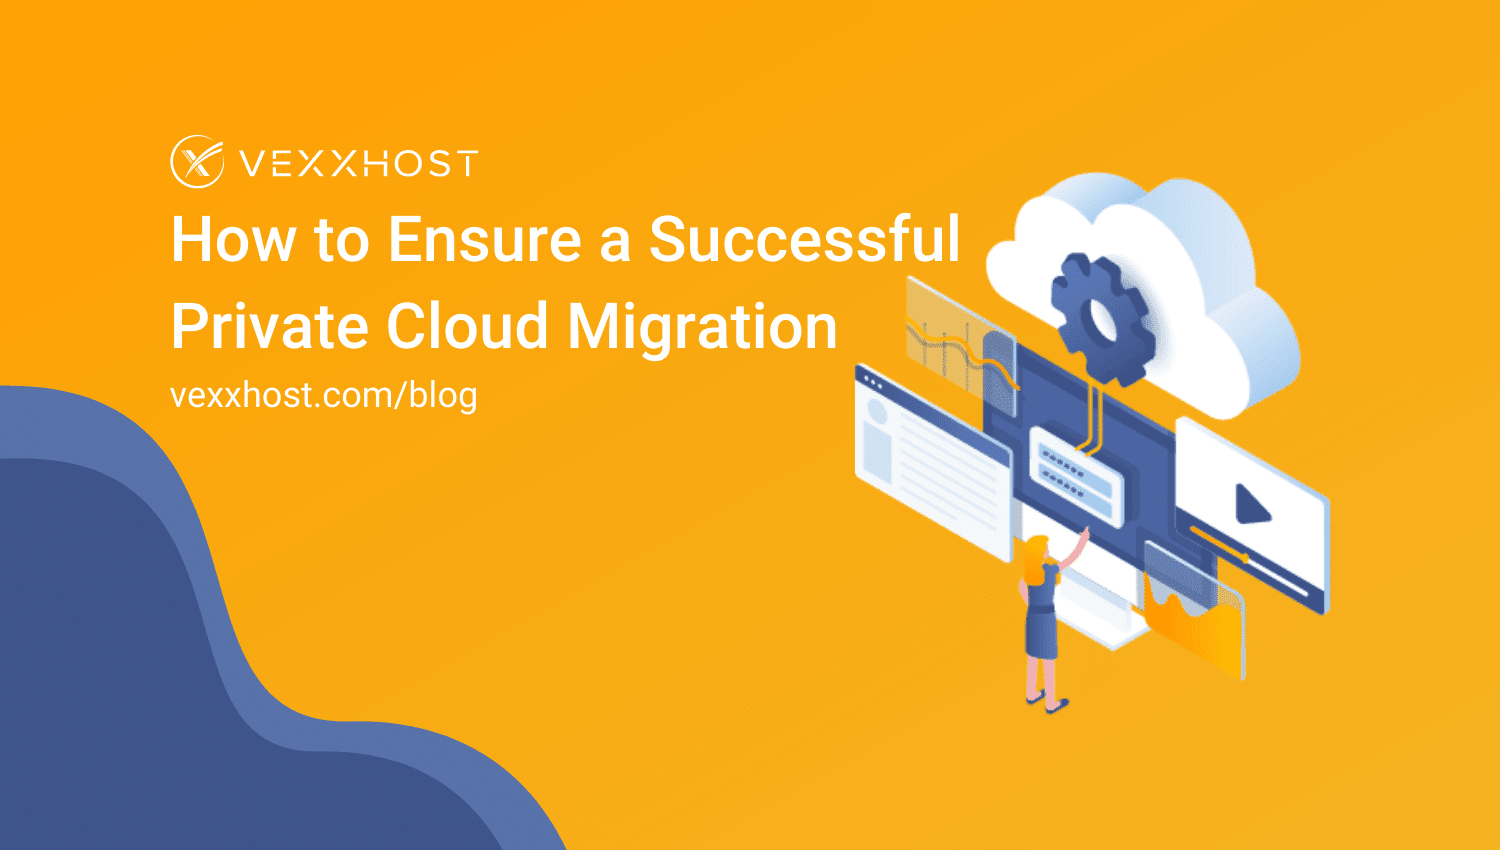 How-to-Ensure-a-Successful-Private-Cloud-Migration-